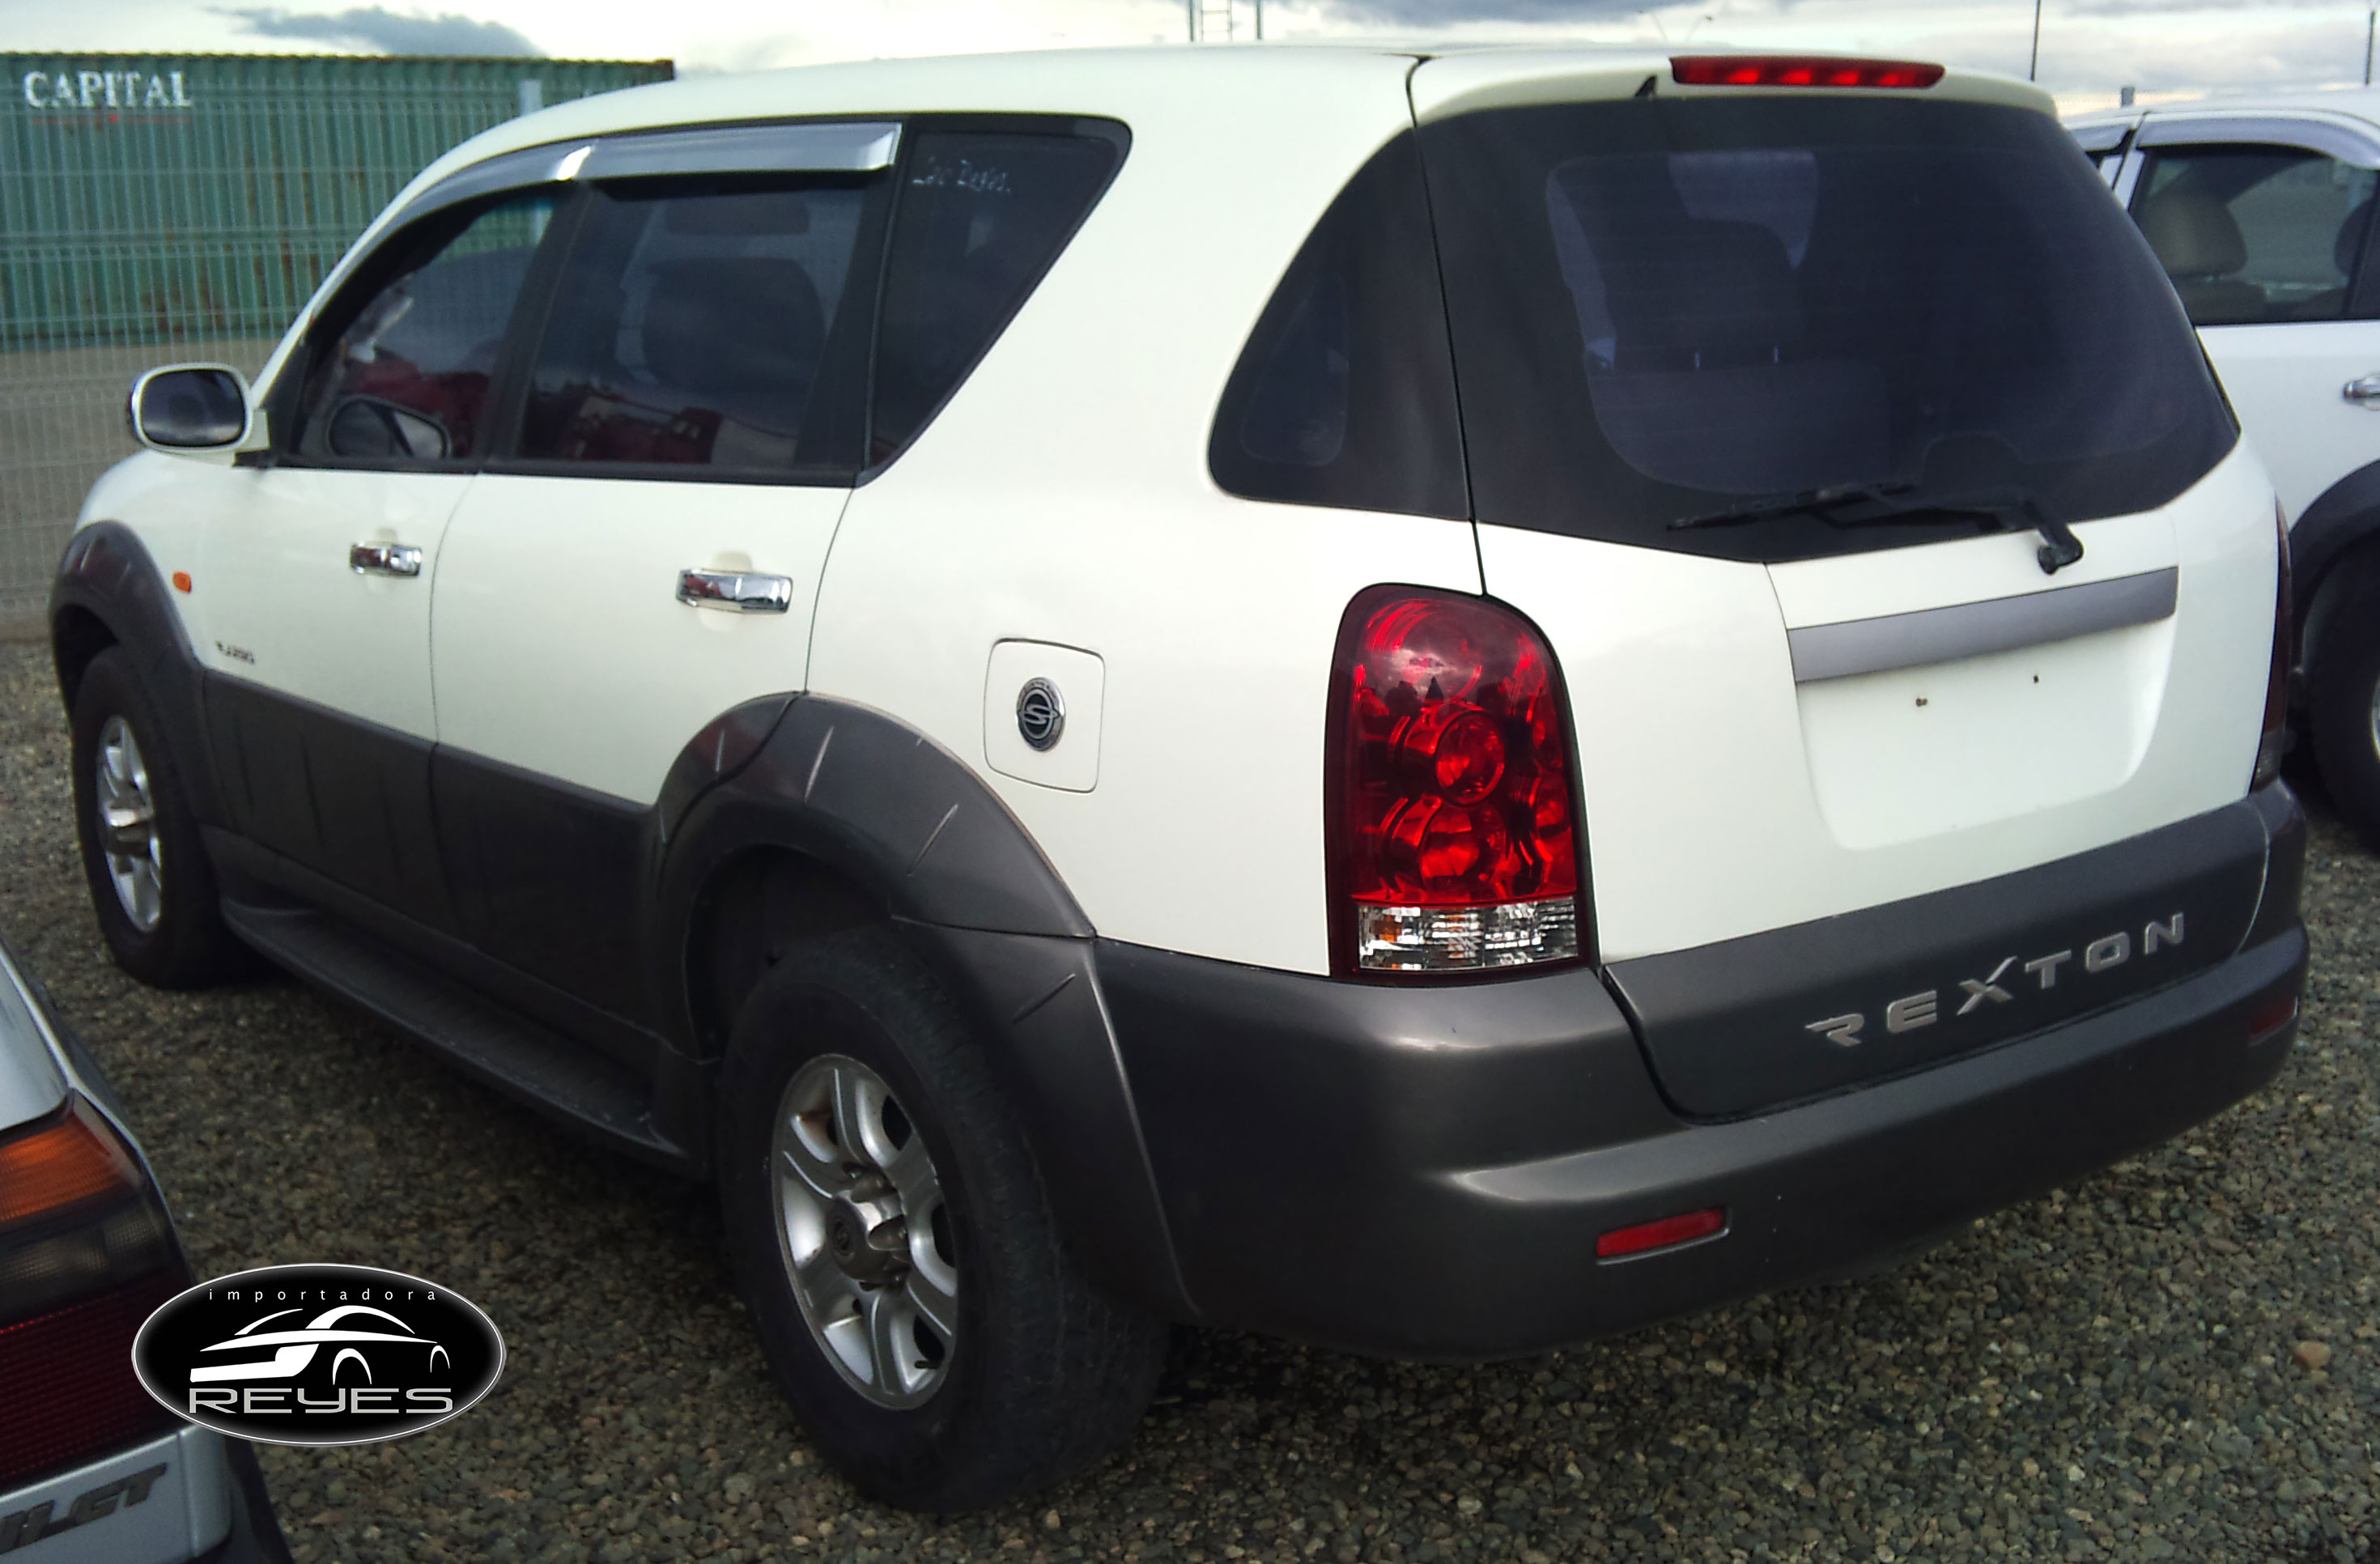 ssangyong rexton i 2002 images